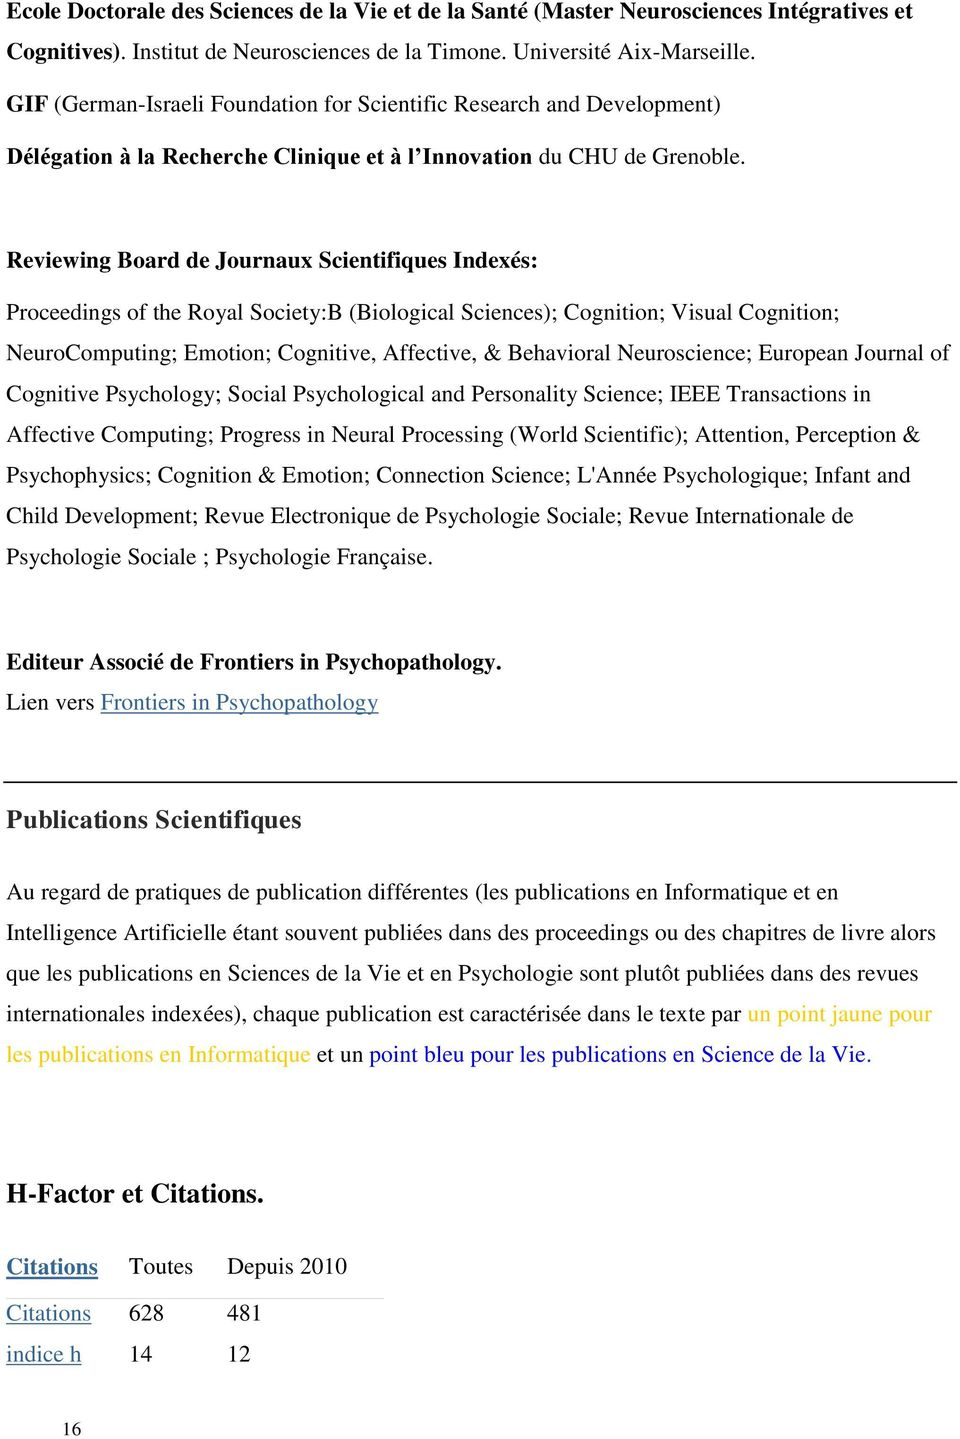 Reviewing Board de Journaux Scientifiques Indexés: Proceedings of the Royal Society:B (Biological Sciences); Cognition; Visual Cognition; NeuroComputing; Emotion; Cognitive, Affective, & Behavioral